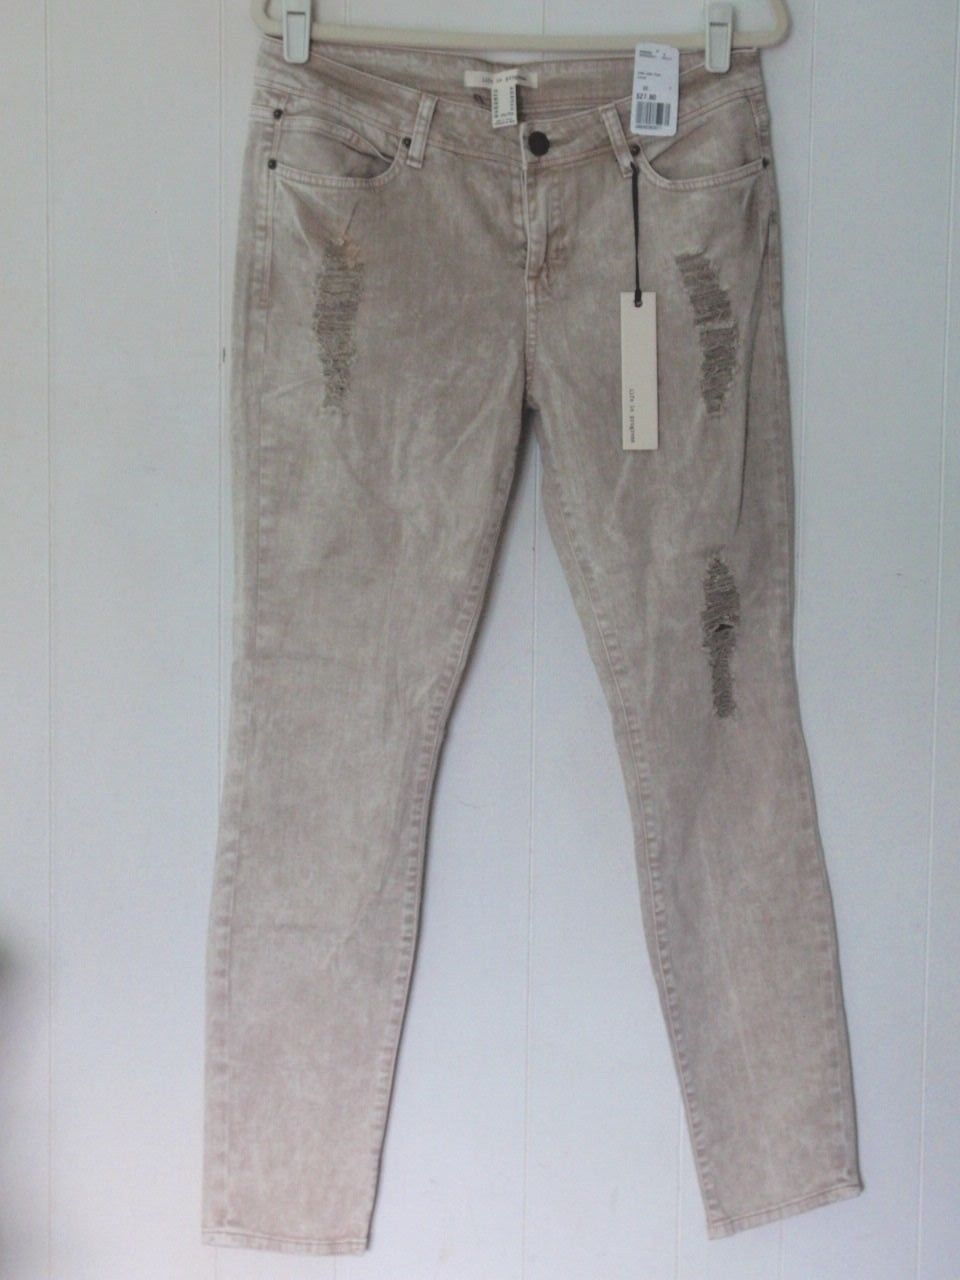 NEW FOREVER 21 COTTON KHAKI STONEWASHED DISTRESSED LOW RISE SKINNY JEANS 10 30